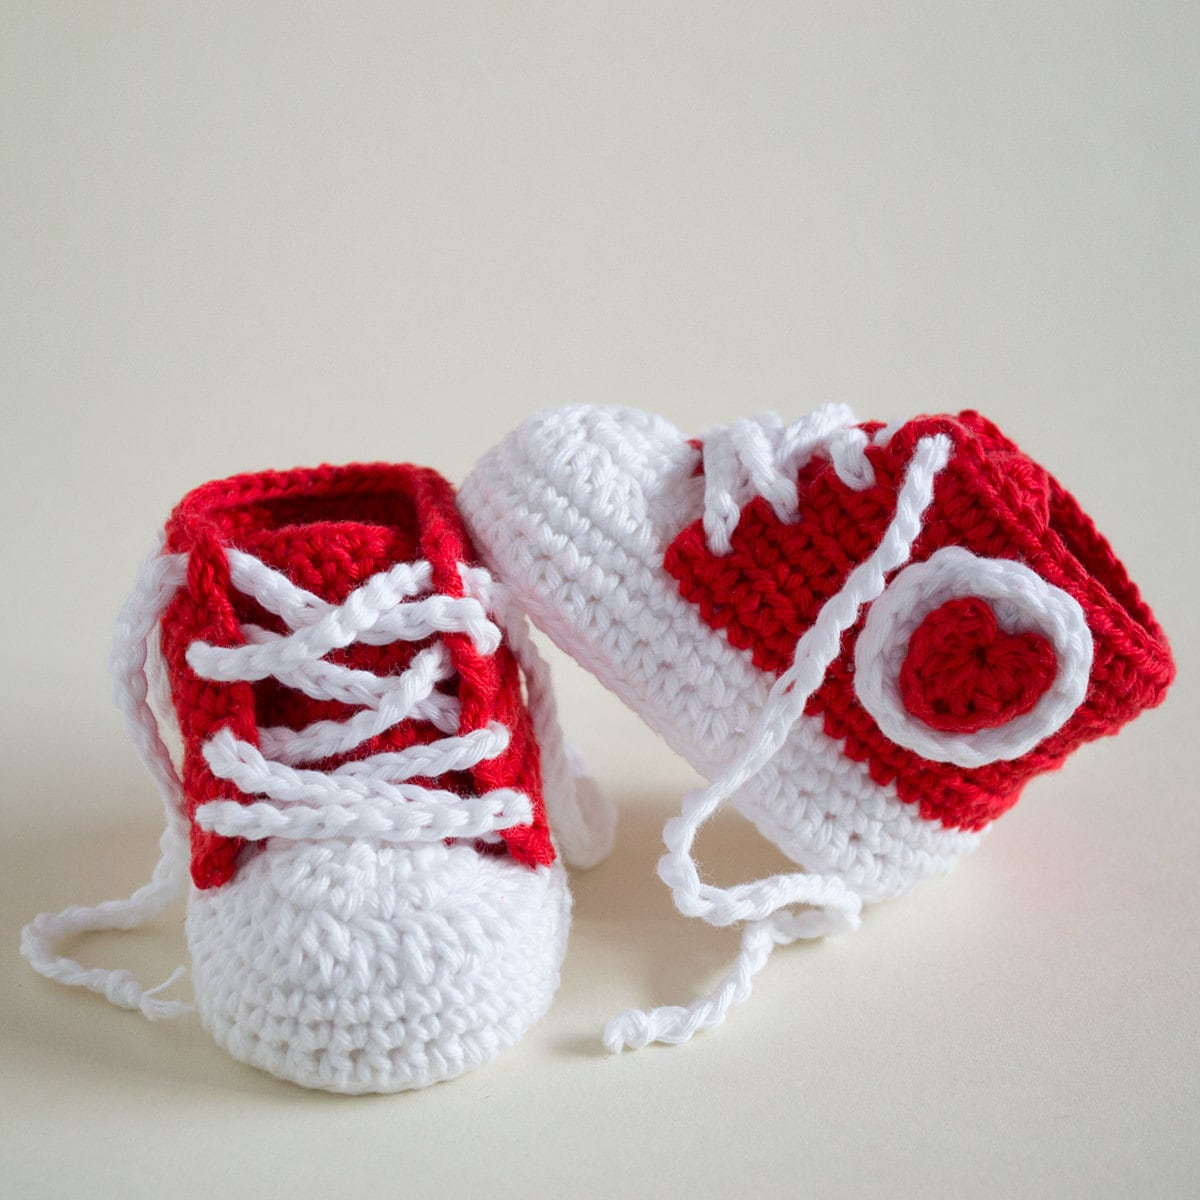 Crochet Fancy Bags : CROCHET PATTERN Fancy Baby Crochet Baby Booties by CrobyPatterns